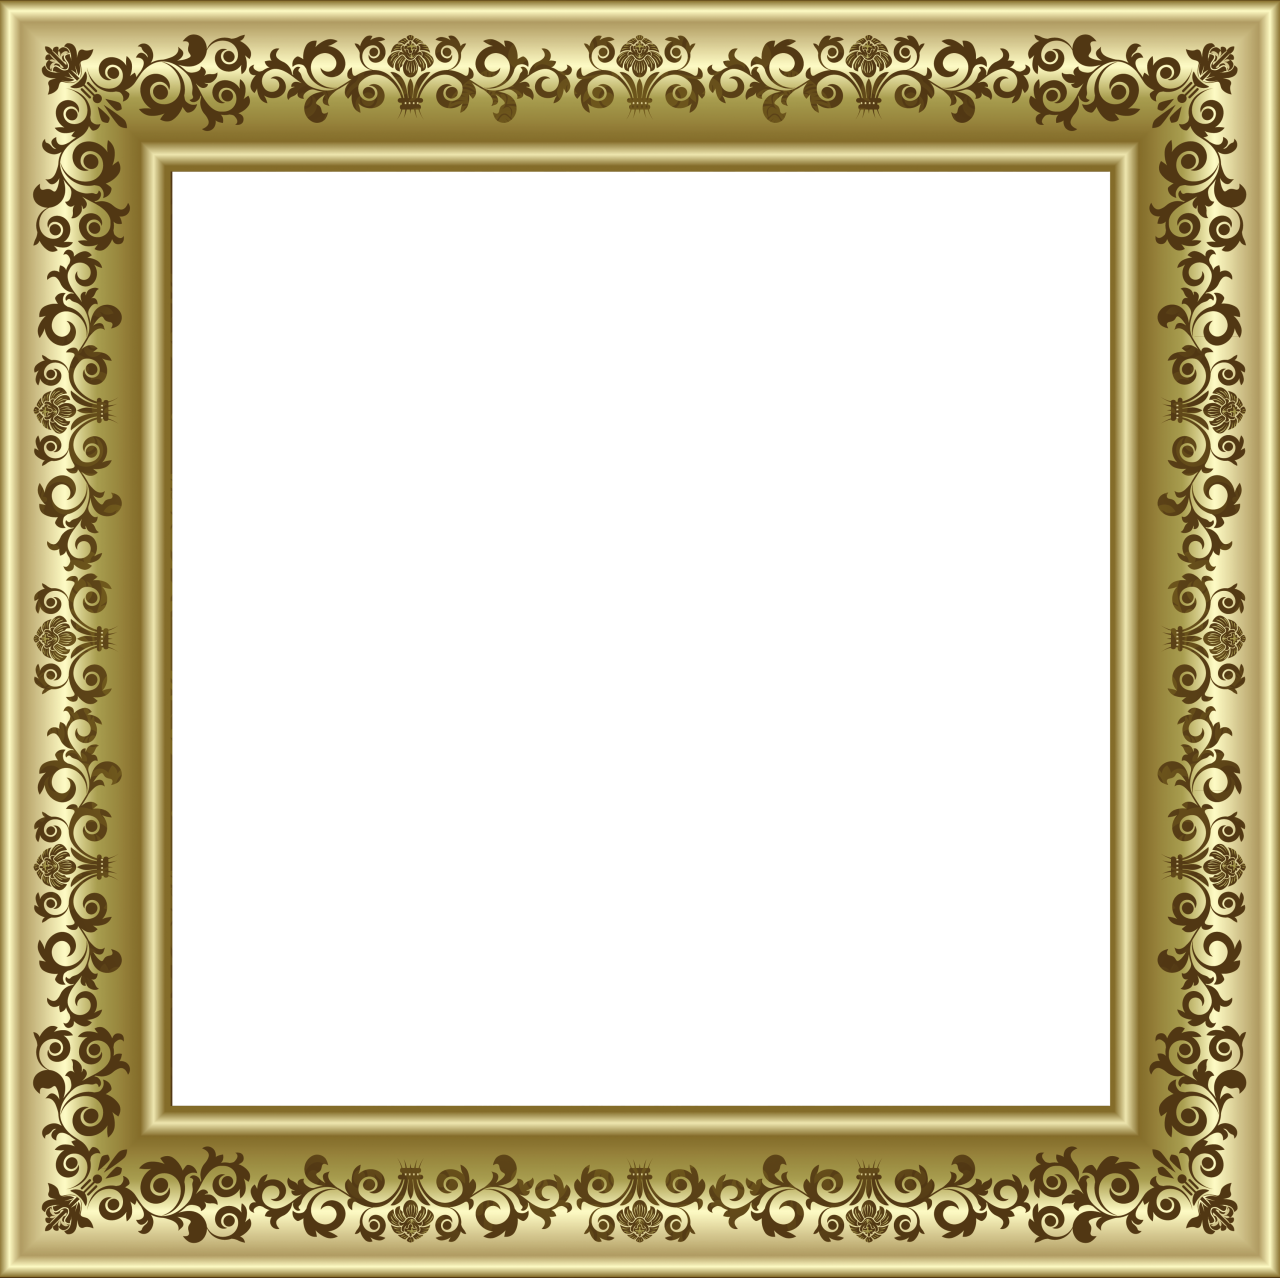 PNG Frames For Pictures-PlusP